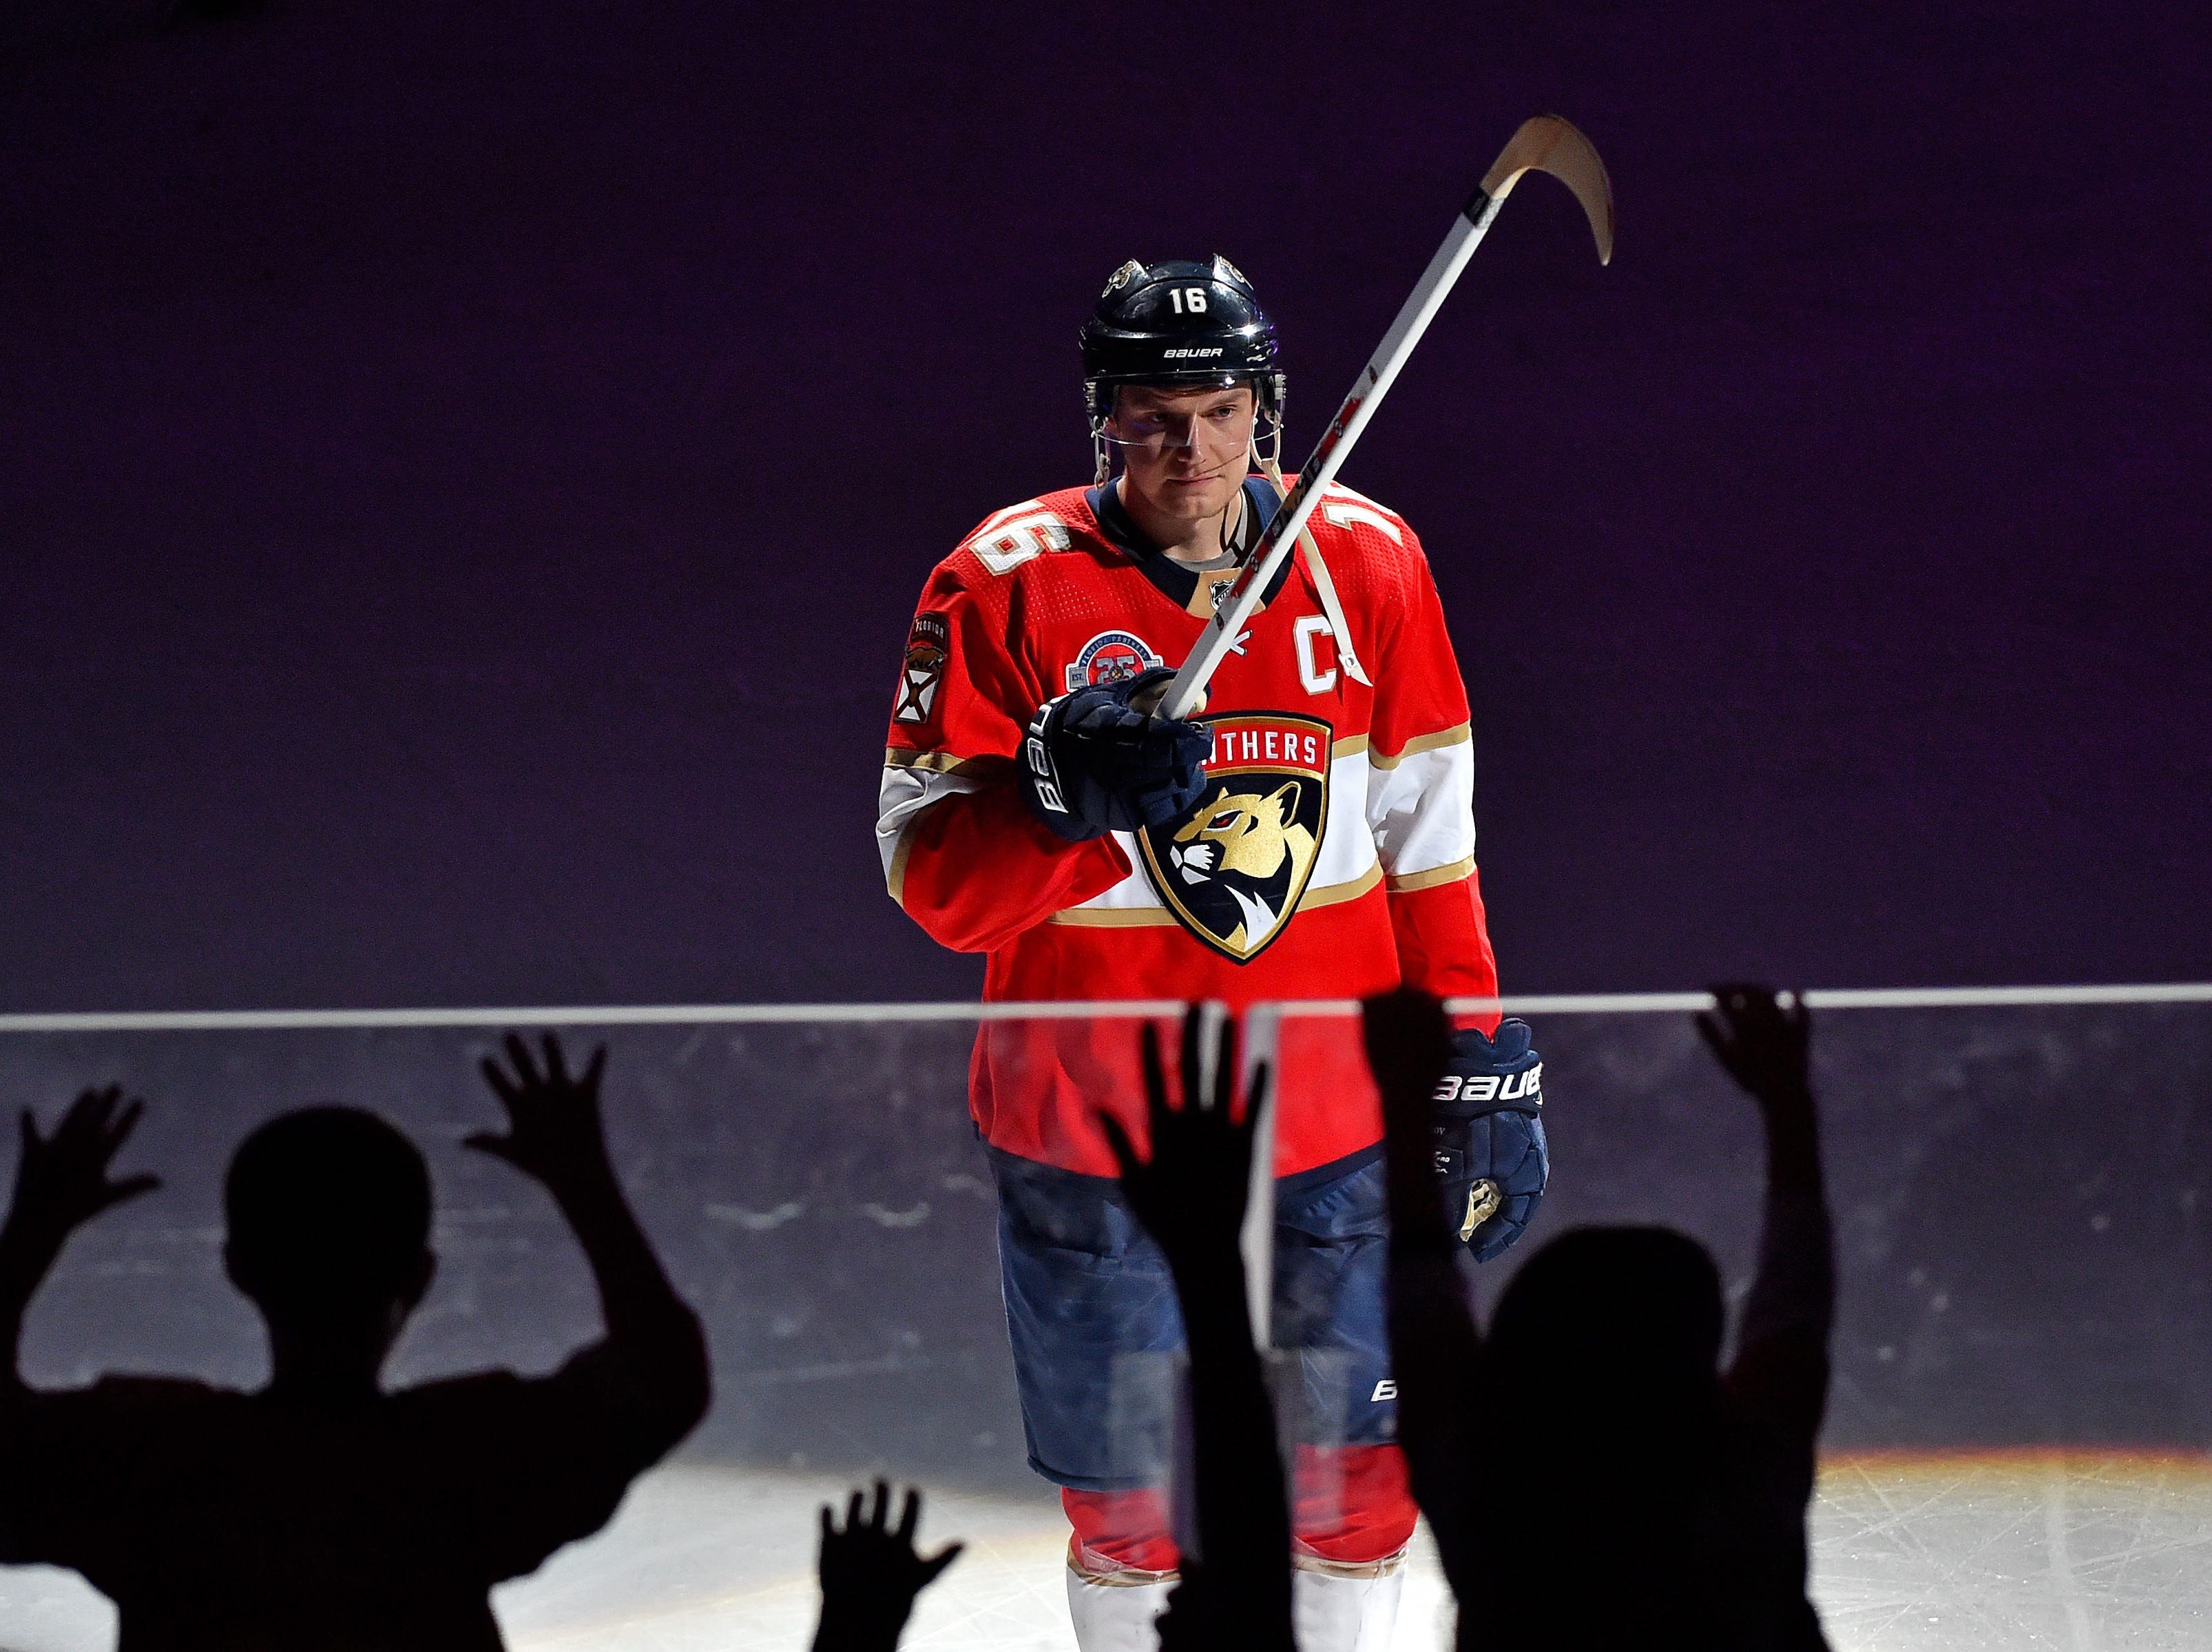 March 8: Florida Panthers center Aleksander Barkov gives his hockey stick to fans after a 6-2 win against the Minnesota Wild. He set a franchise record with five assists in the game.